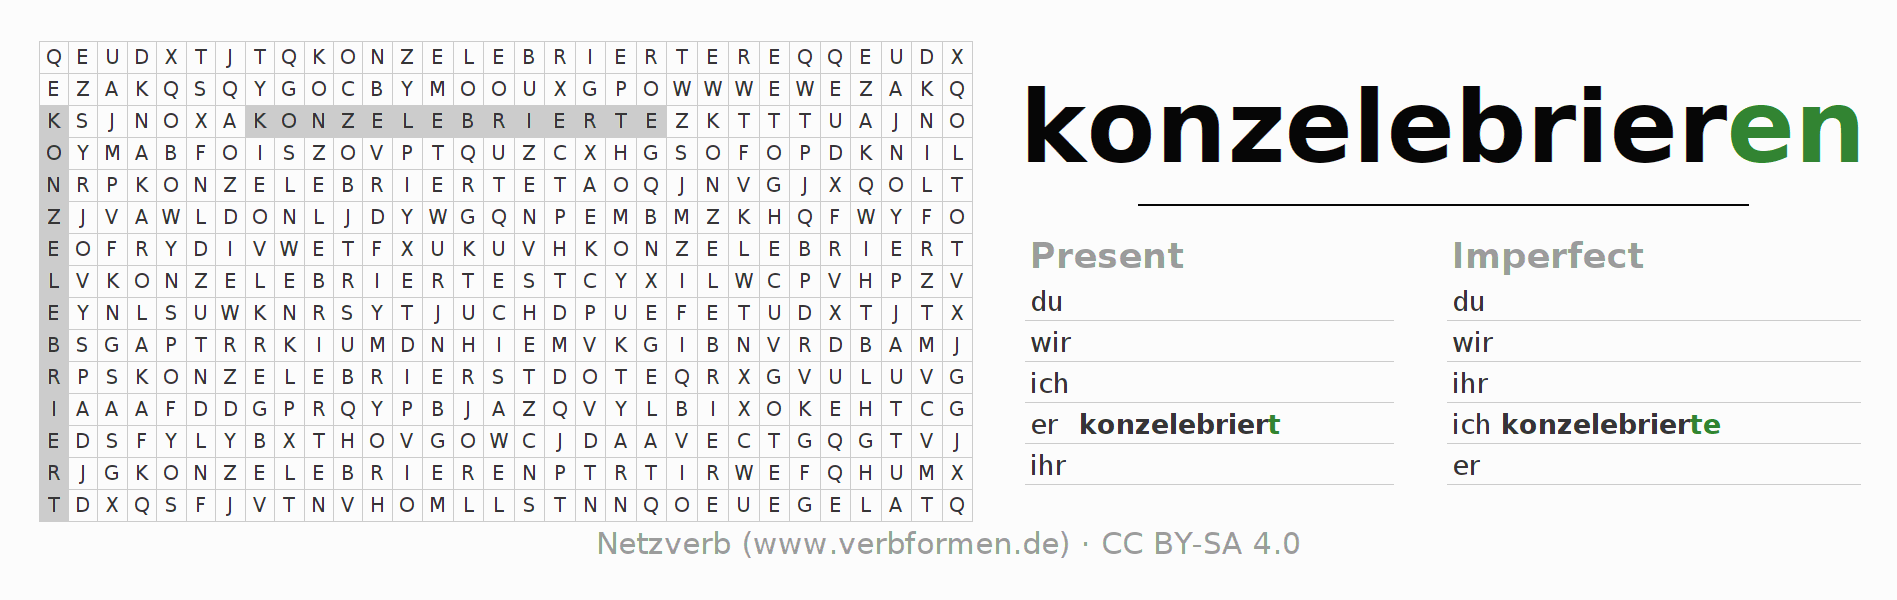 Word search puzzle for the conjugation of the verb konzelebrieren